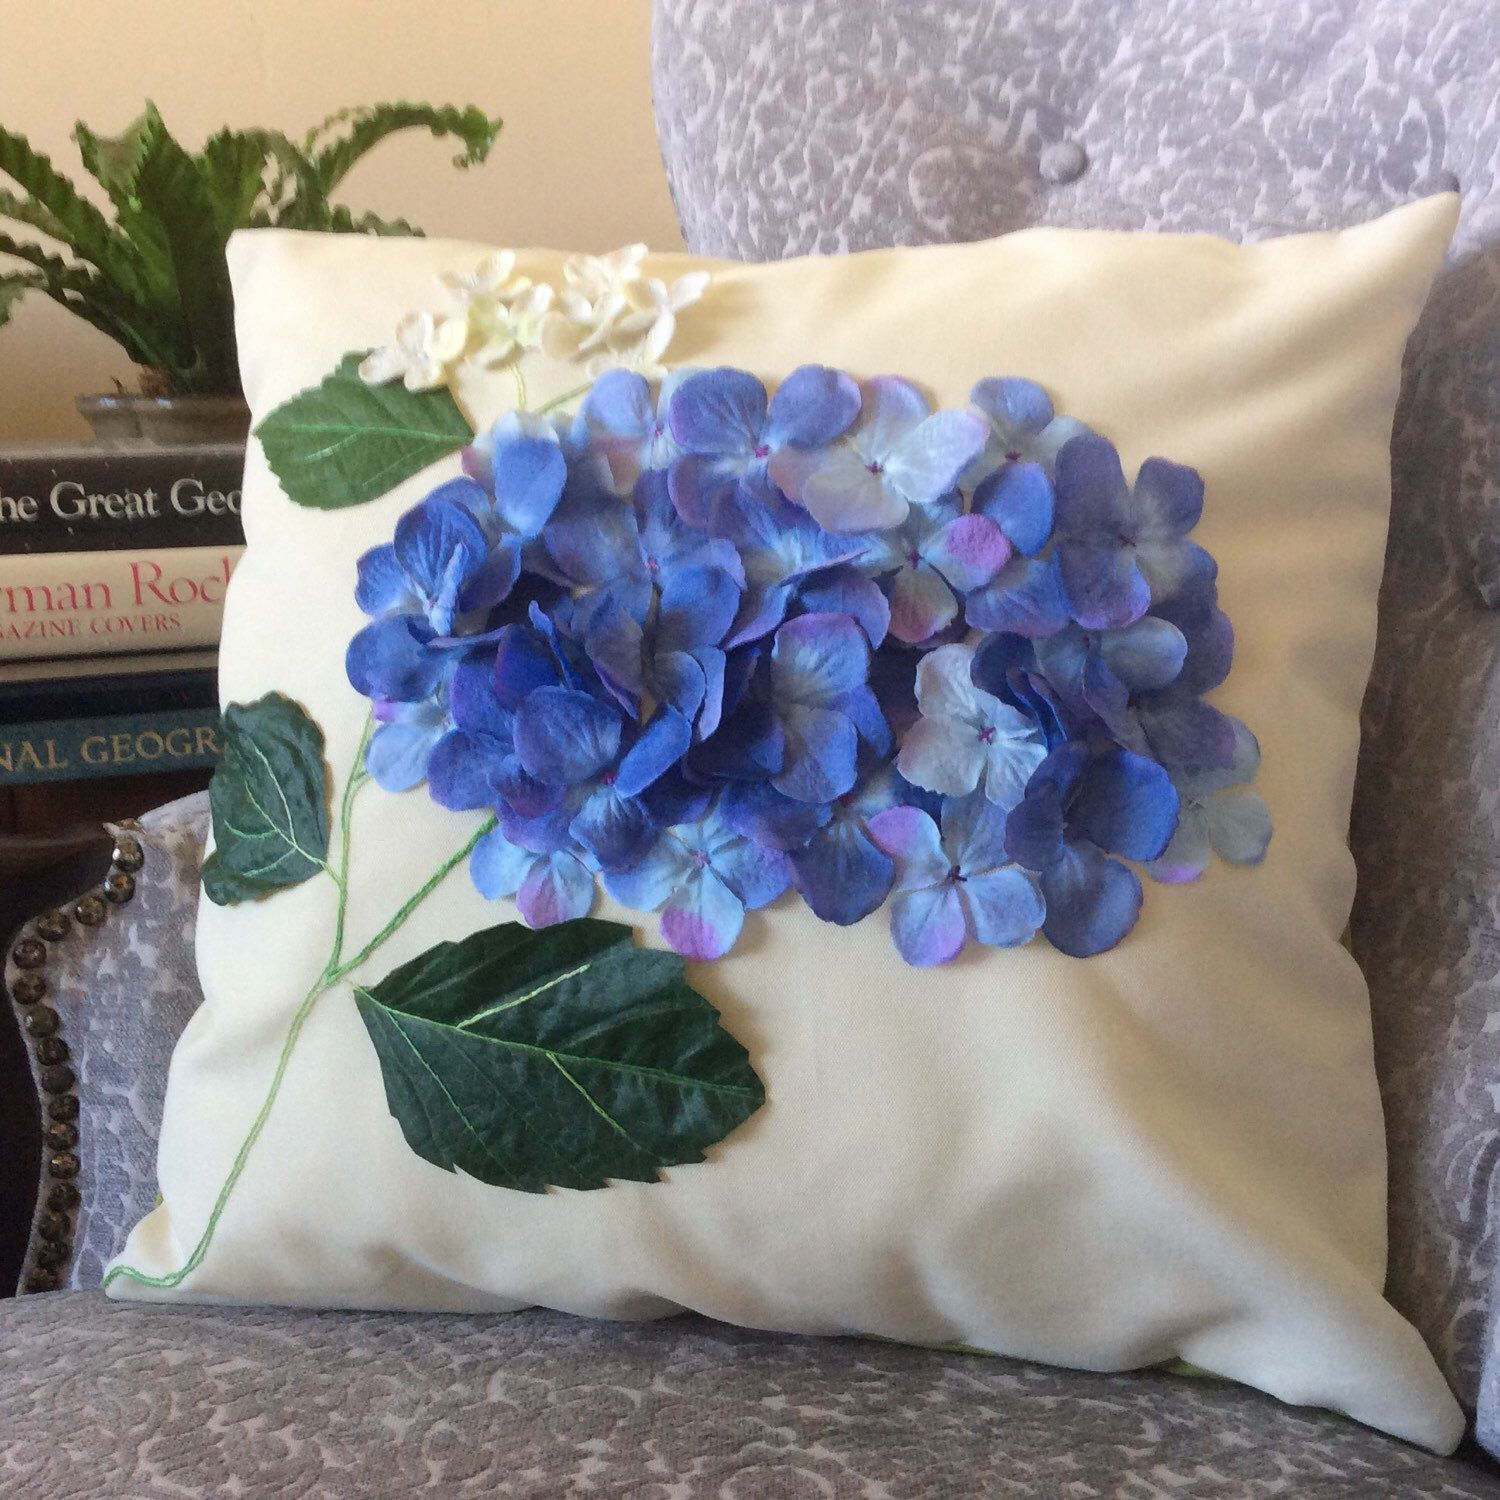 Outdoor Pillow Cover, Sun Shade Pillow, Hydrangea Pillow, Floral Applique, Blue Flower Pillow,Outdoor Wedding Decor, Water Resistant Pillow by AngieandLois on Etsy https://www.etsy.com/listing/232834882/outdoor-pillow-cover-sun-shade-pillow